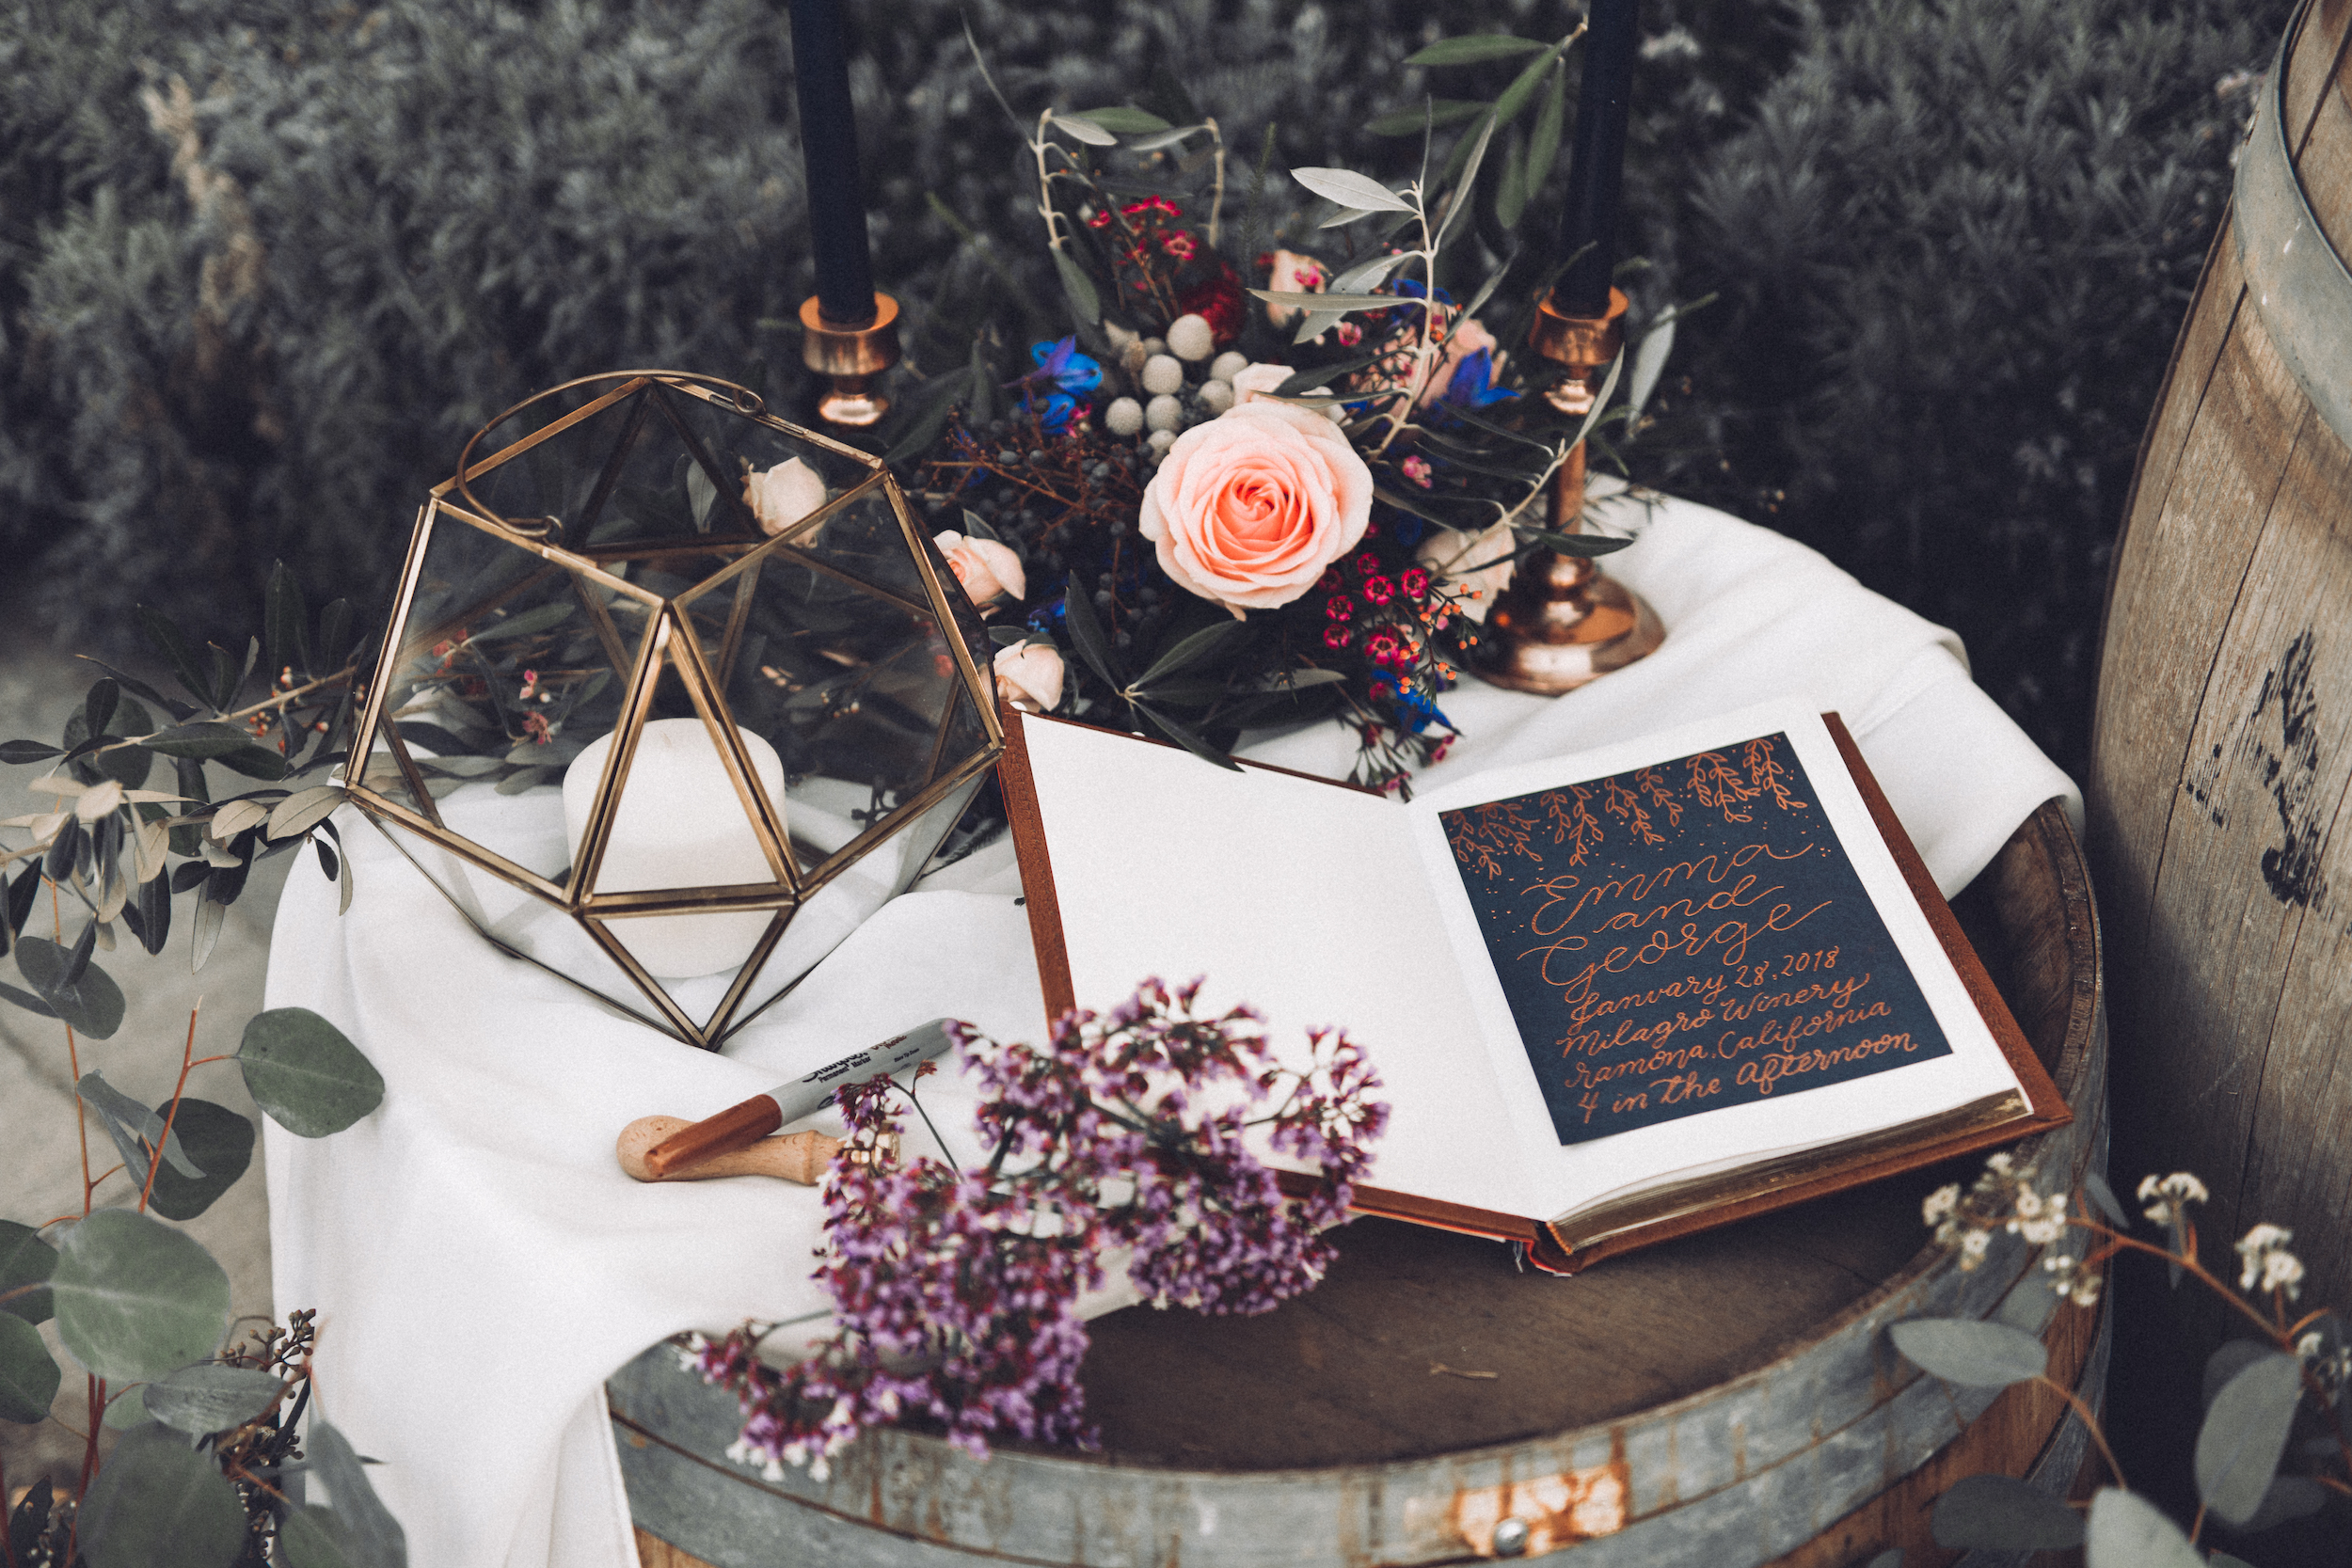 - A beautiful guest book for wonderful and lasting memories!